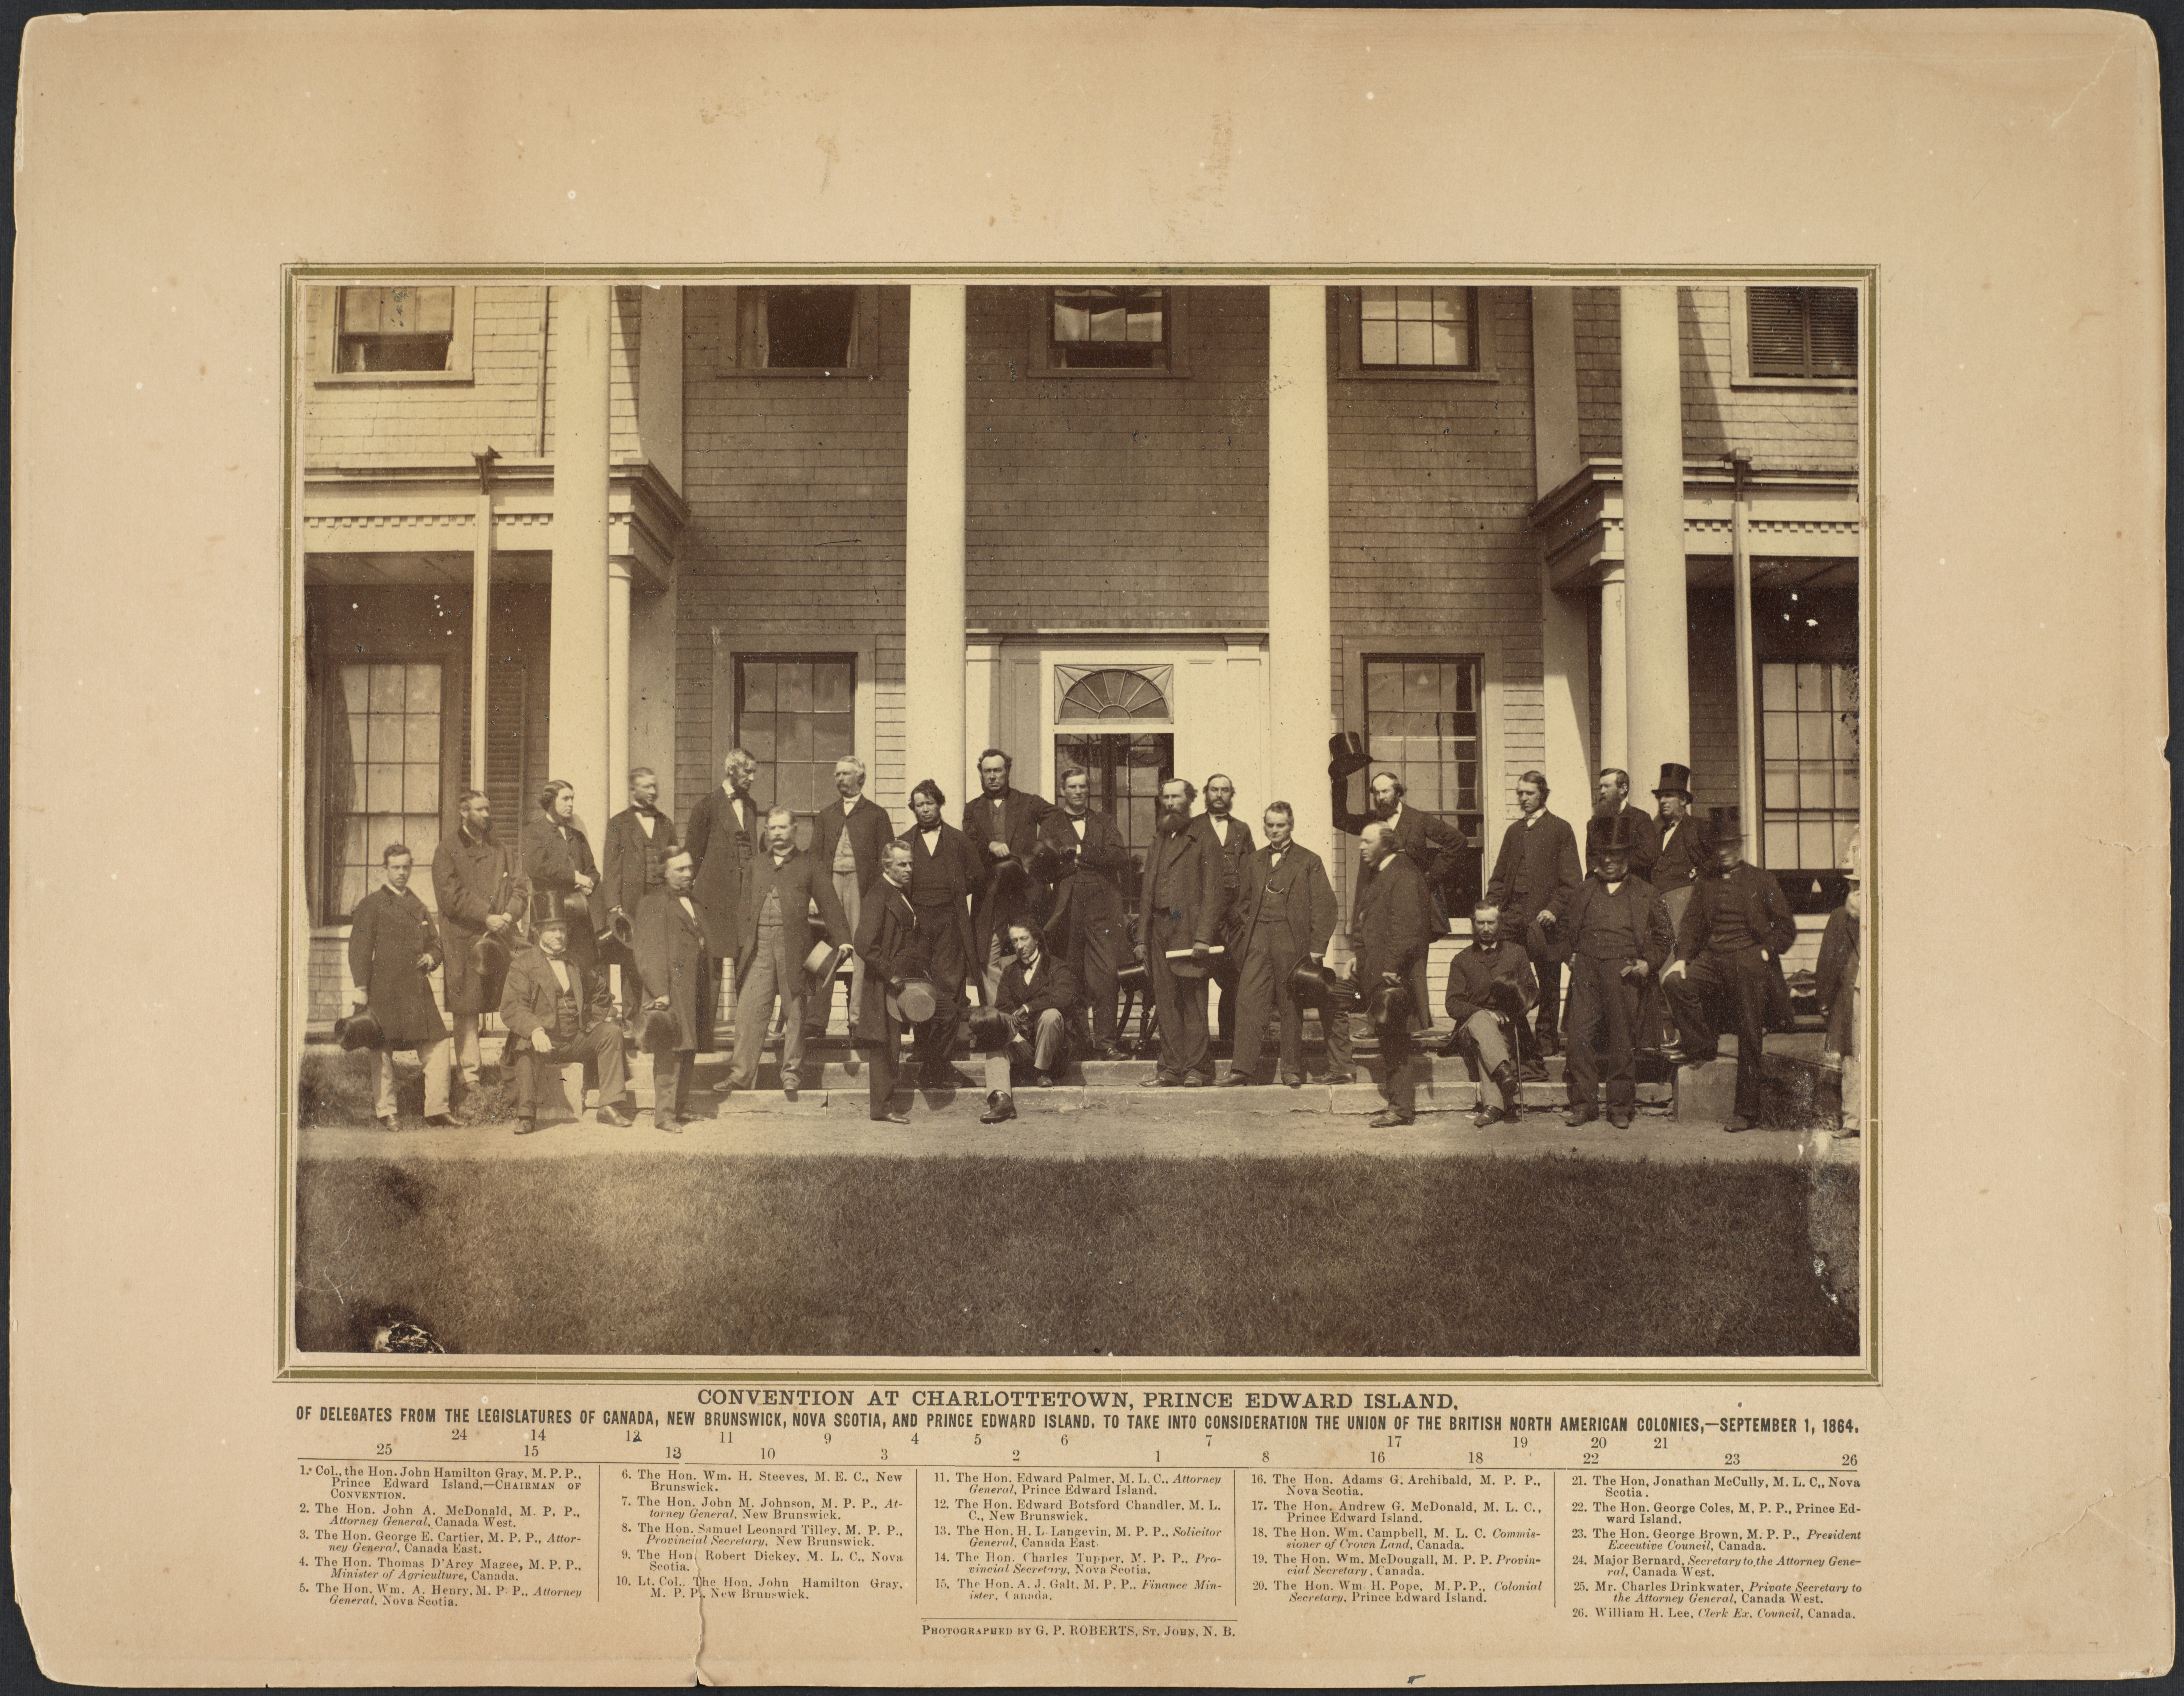 Black and white photo of men gathered in front of a building.